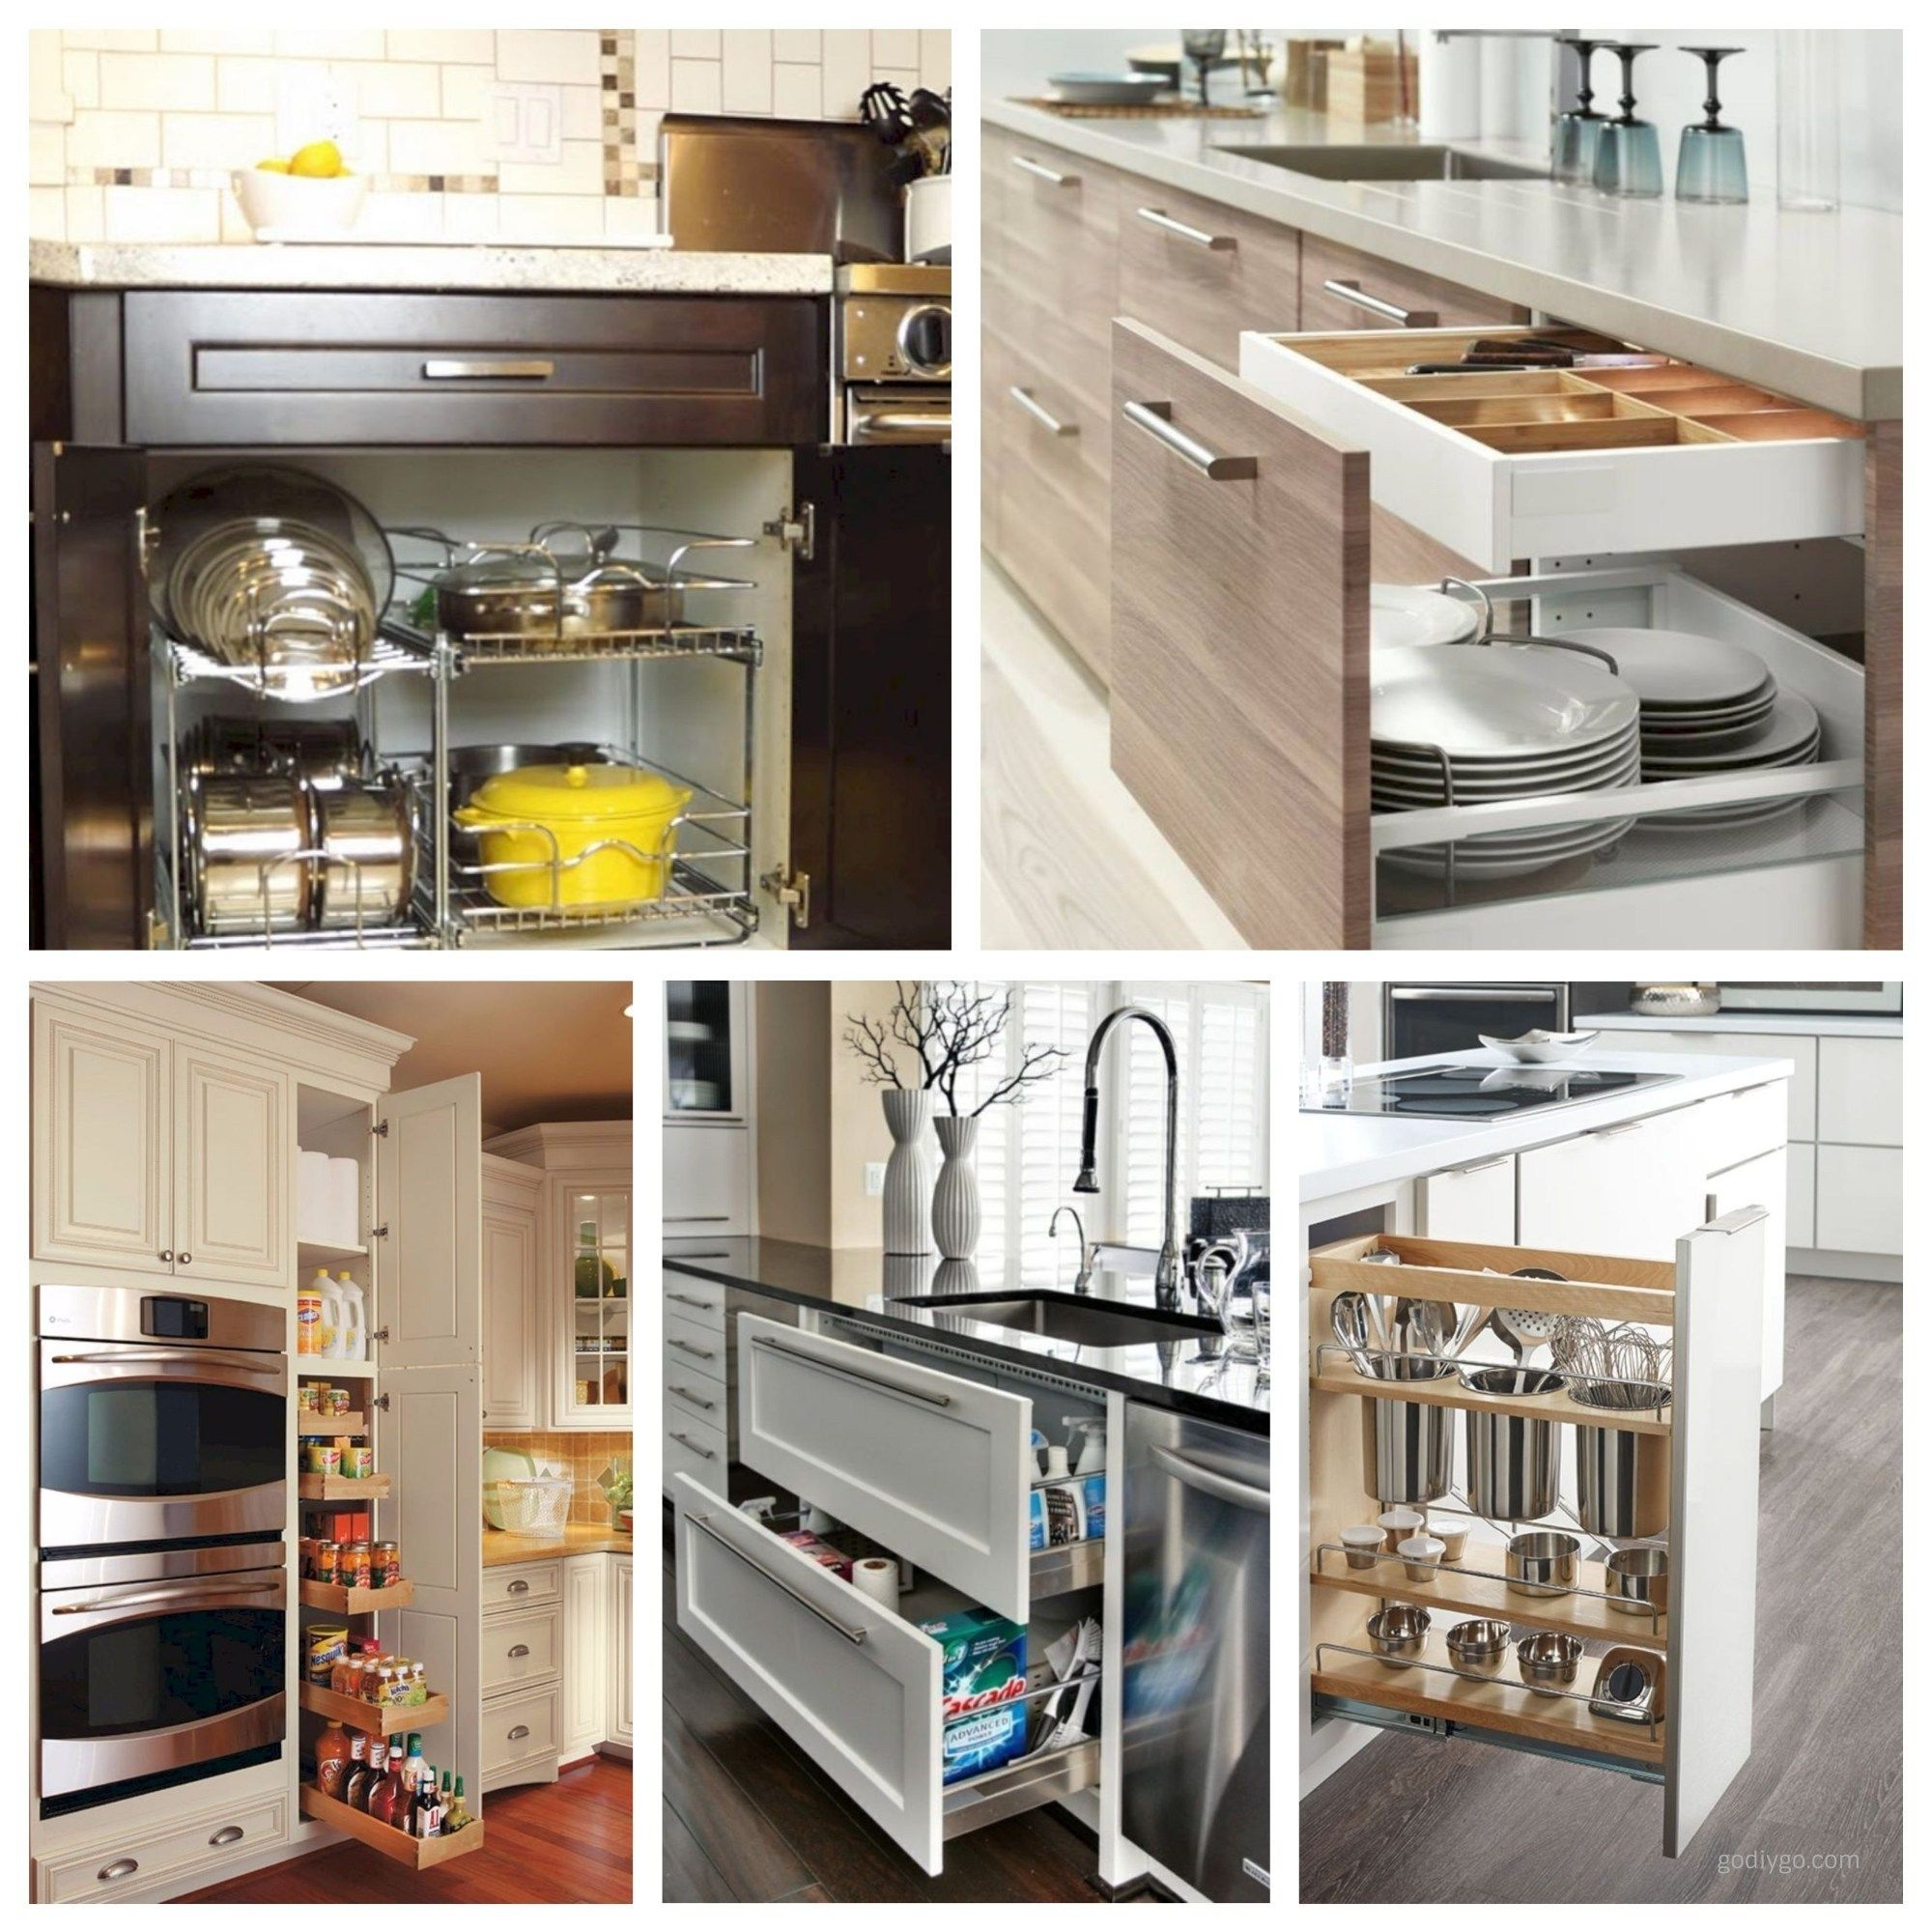 An Organizing Expert Offers Expertise For Kitchen Organization And Storage Solutions The K Smart Kitchen Small Kitchen Cabinets Apartment Kitchen Organization